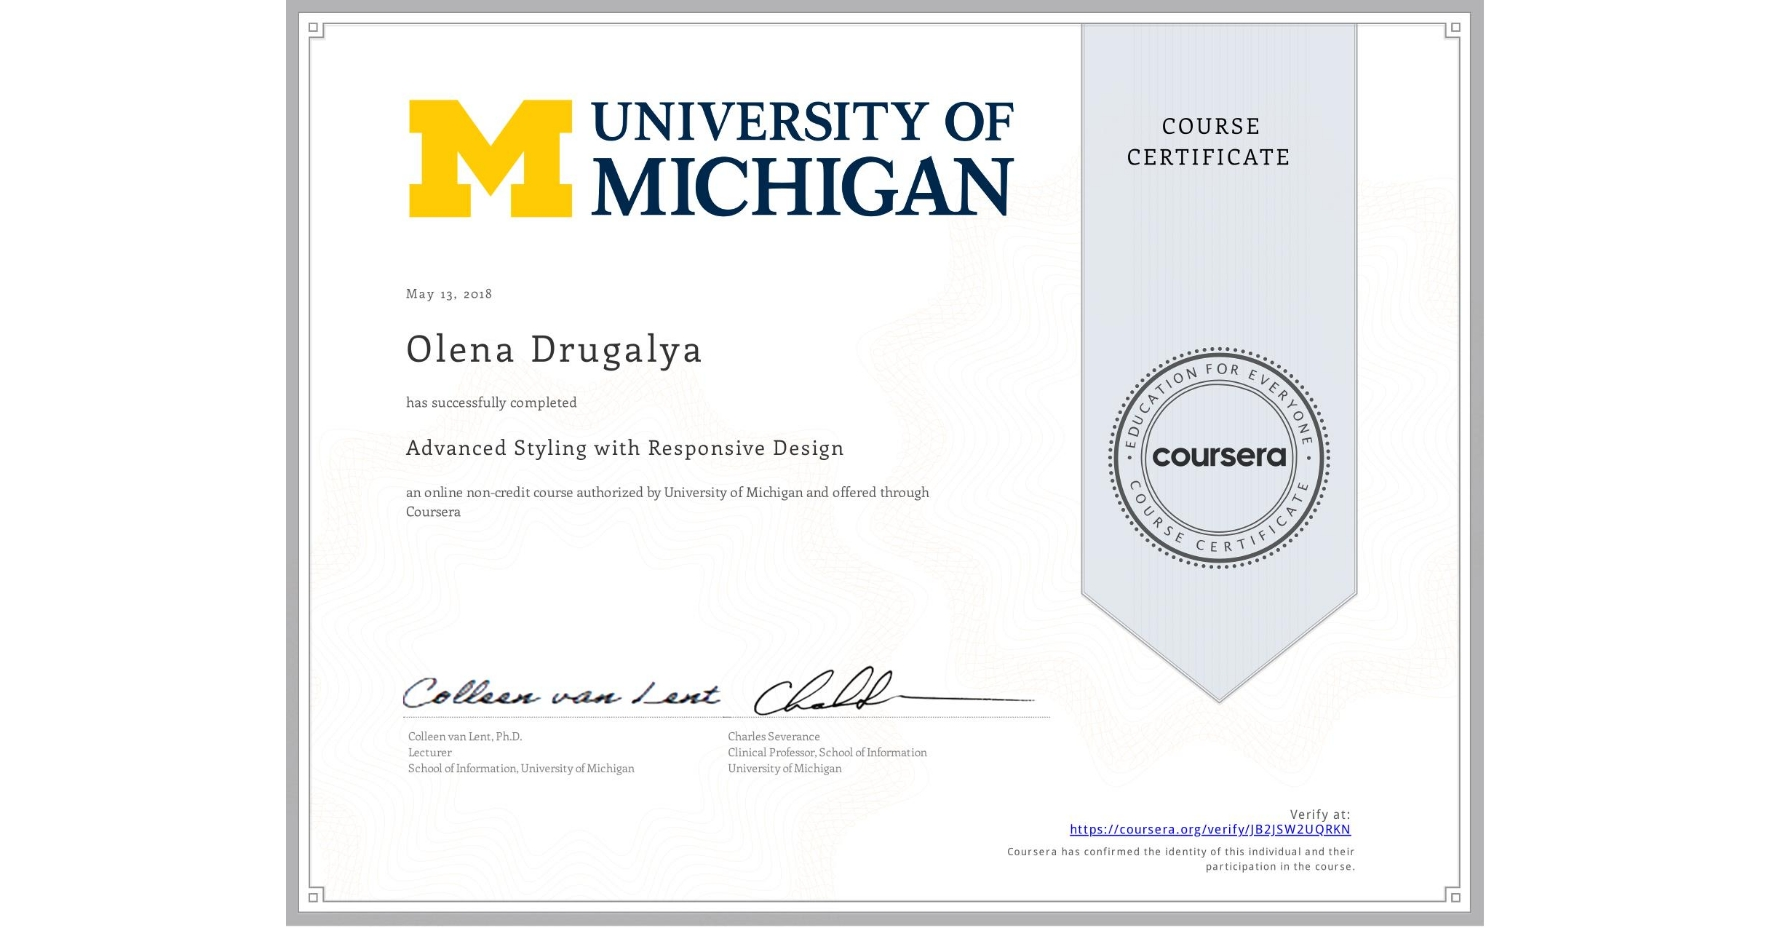 View certificate for Olena Drugalya, Advanced Styling with Responsive Design, an online non-credit course authorized by University of Michigan and offered through Coursera